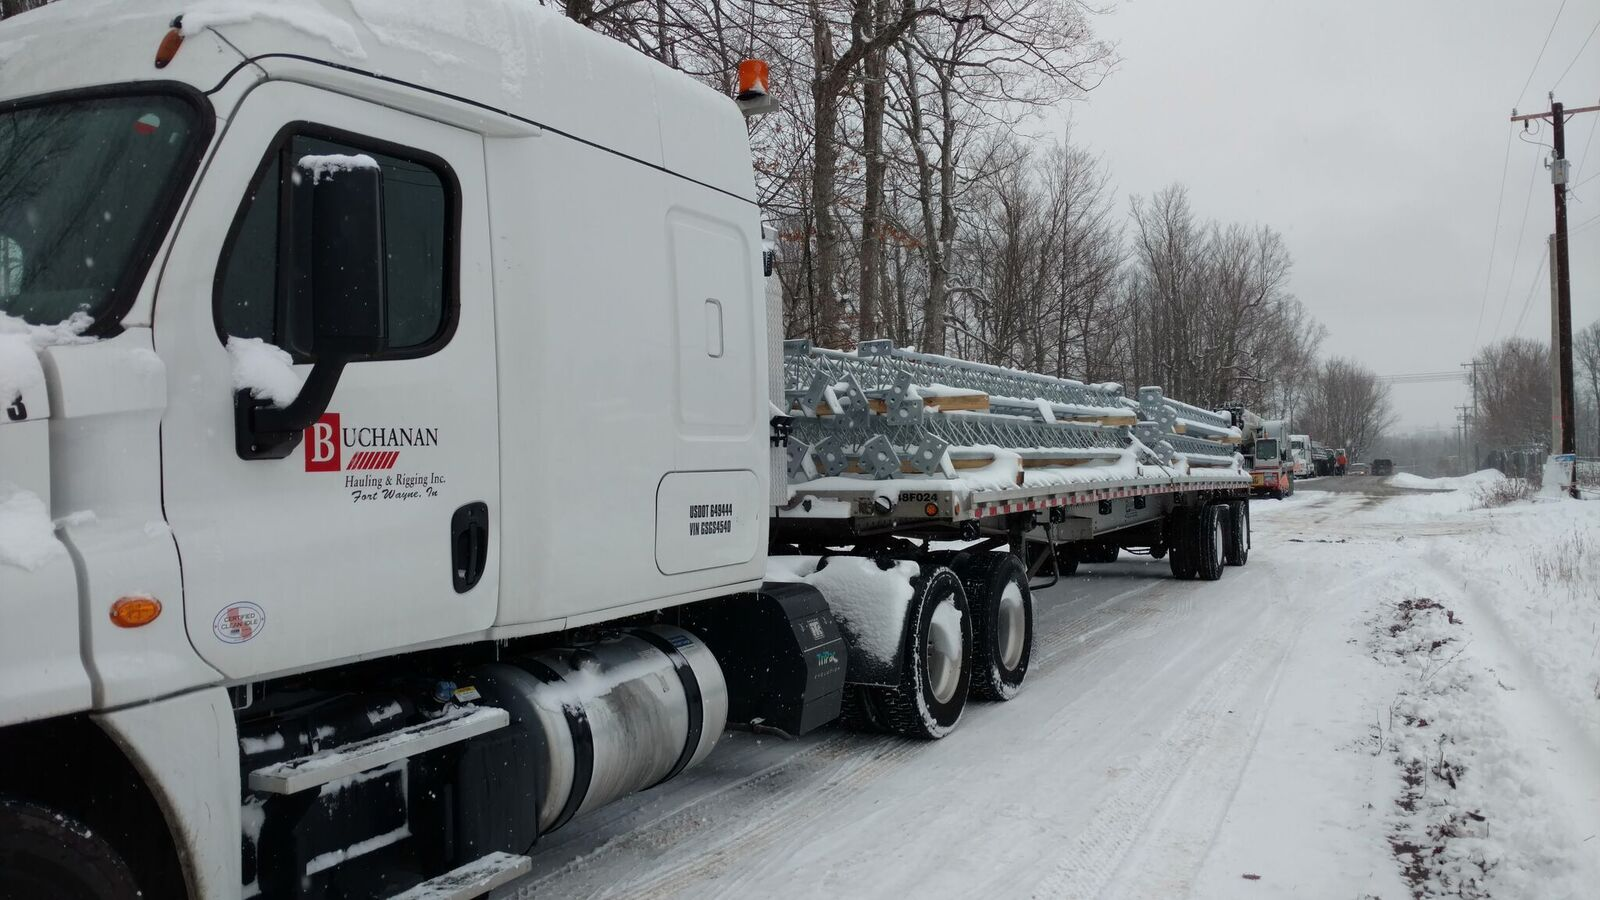 Buchanan Flatbed in Snow